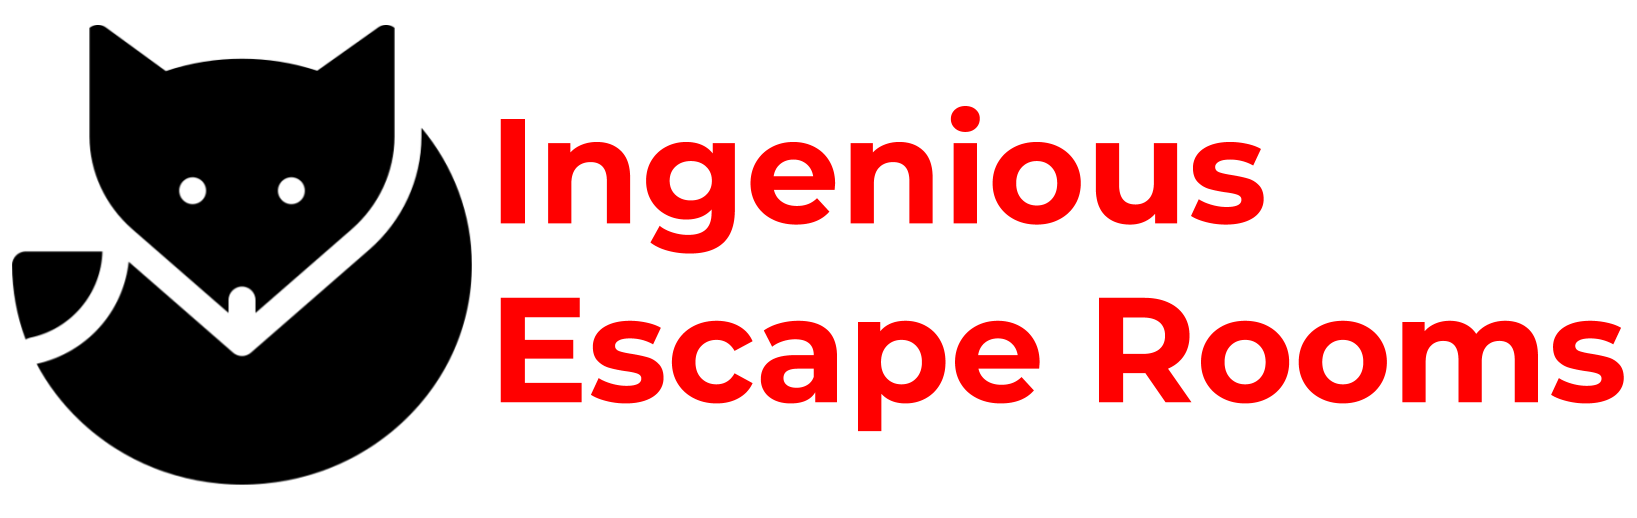 Ingenious Escape Rooms |   Bruce Rodgers